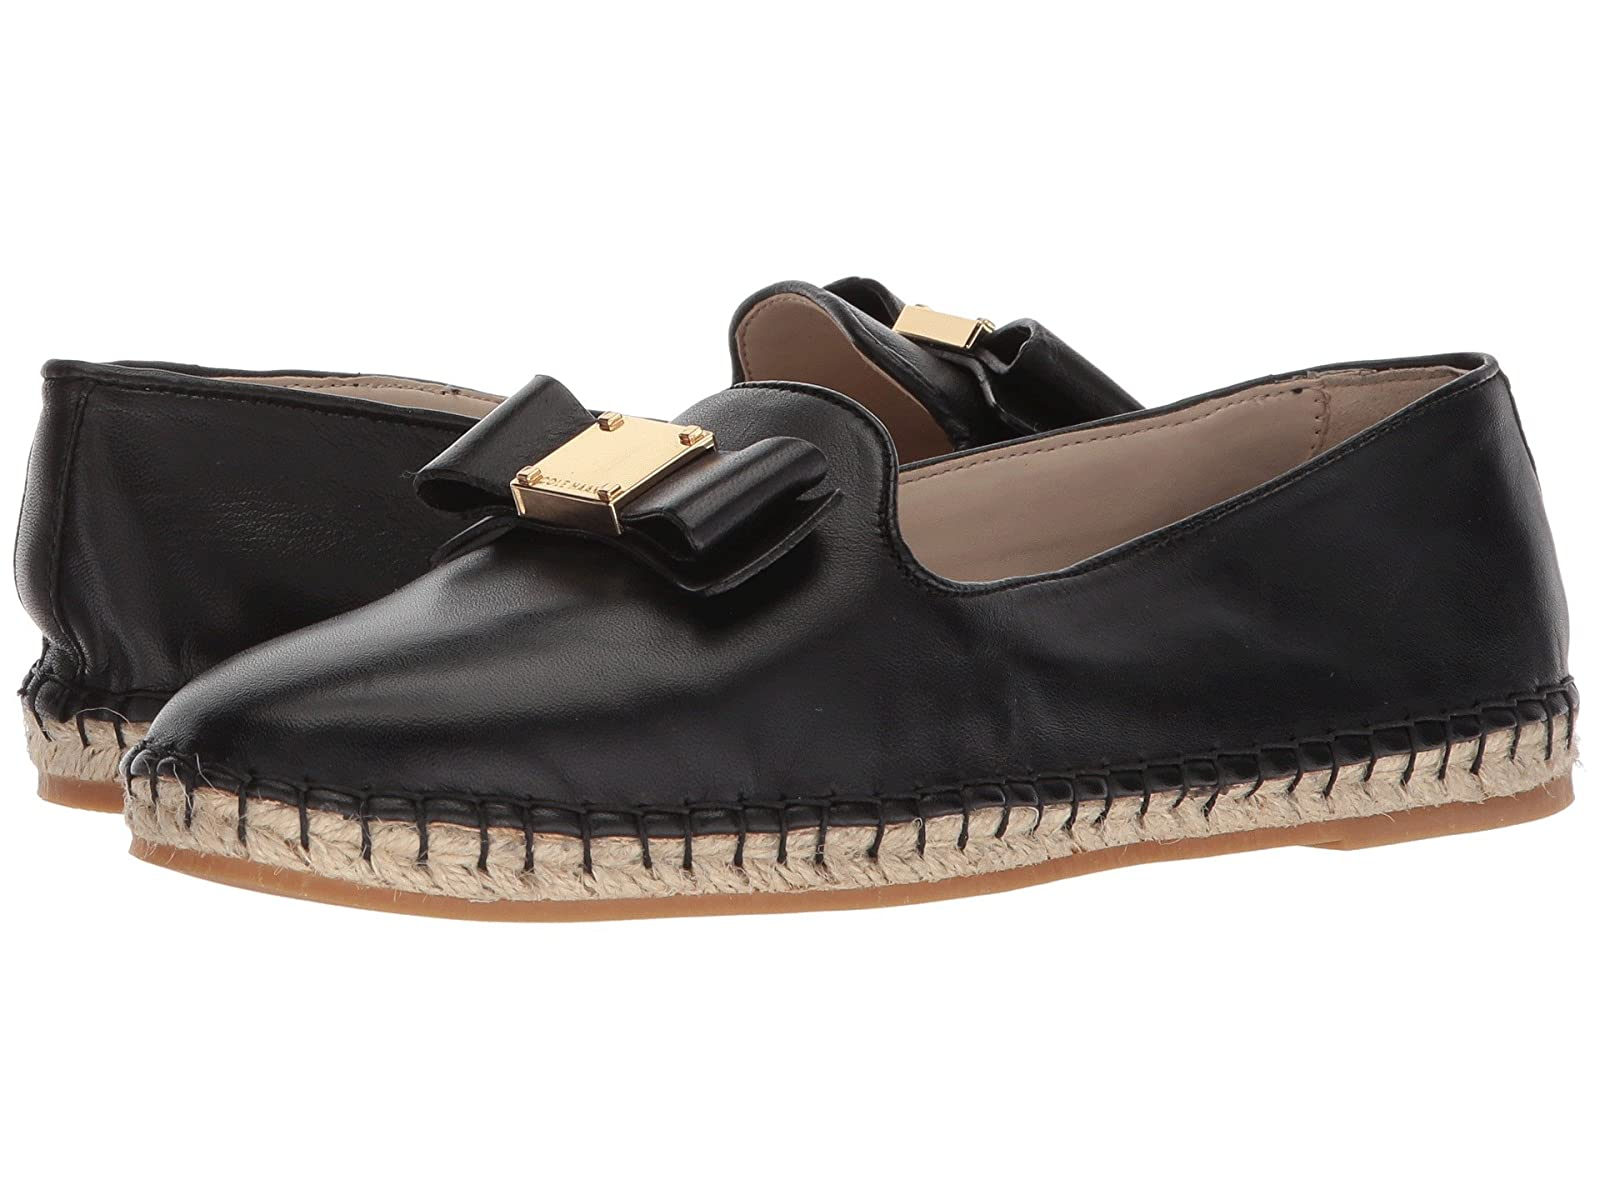 Cole Haan Tali Bow EspadrilleCheap and distinctive eye-catching shoes